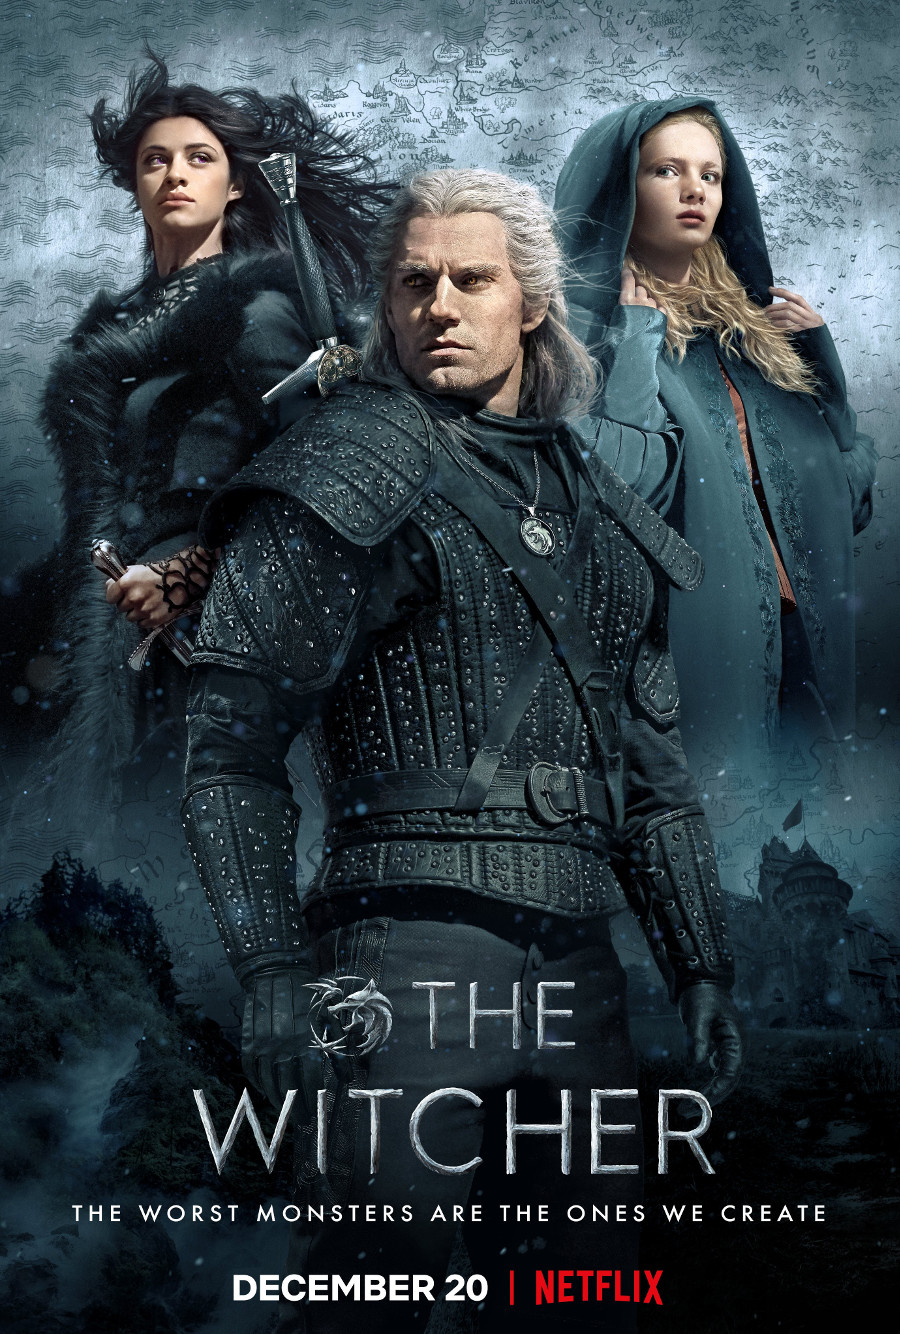 Henry Cavill The Witcher poster